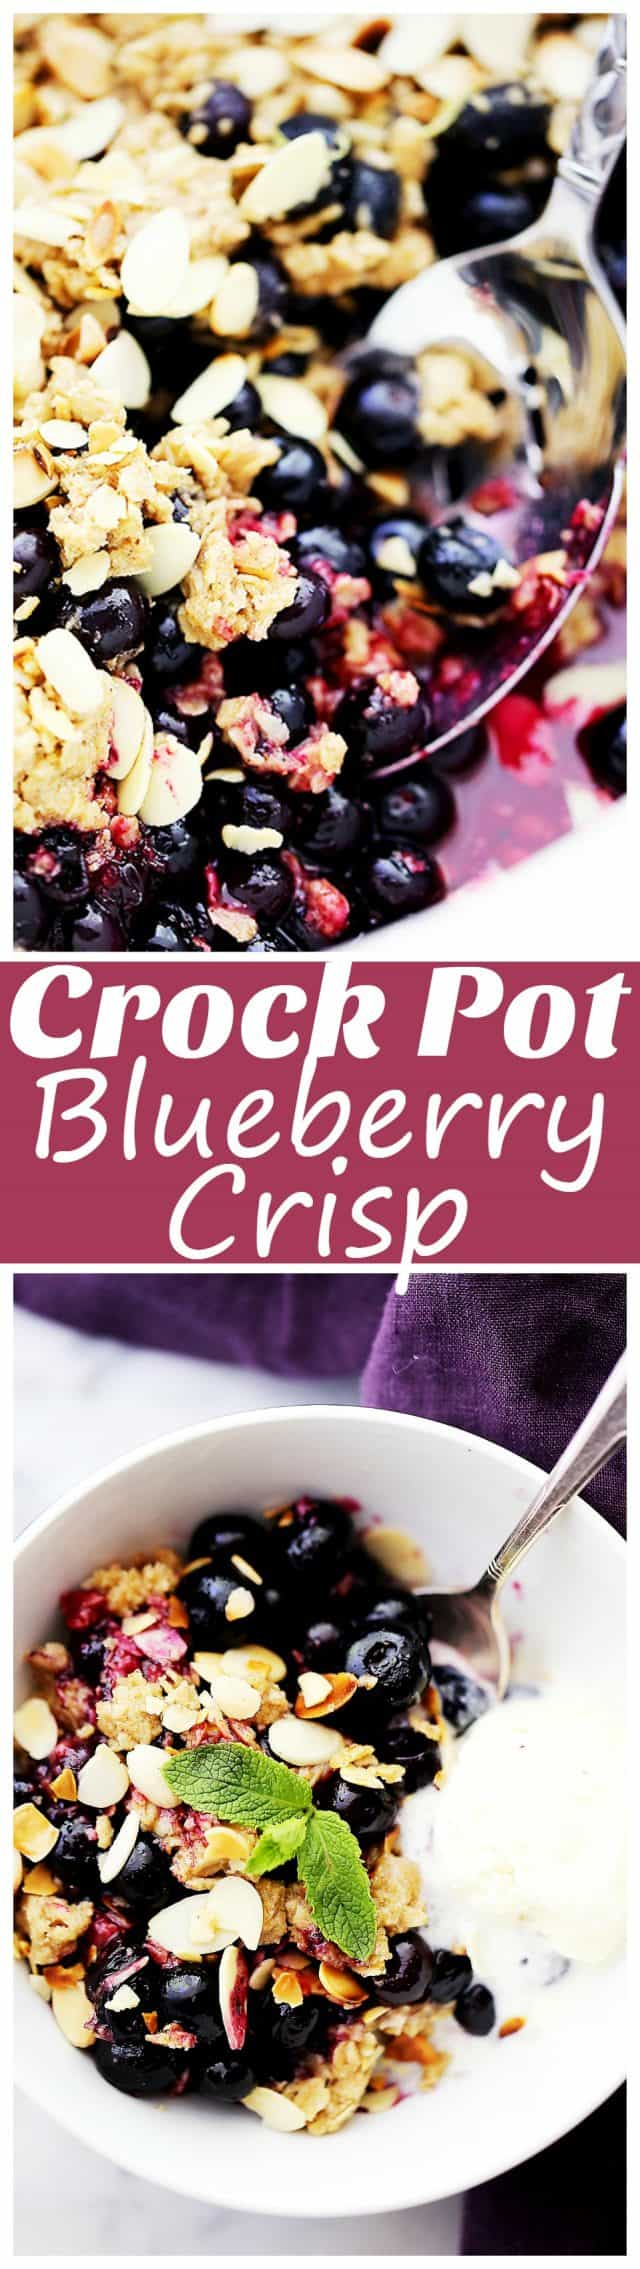 Crock Pot Blueberry Crisp - Packed with blueberries and oats, this simple, super delicious Blueberry Crisp is made right in the crock pot!